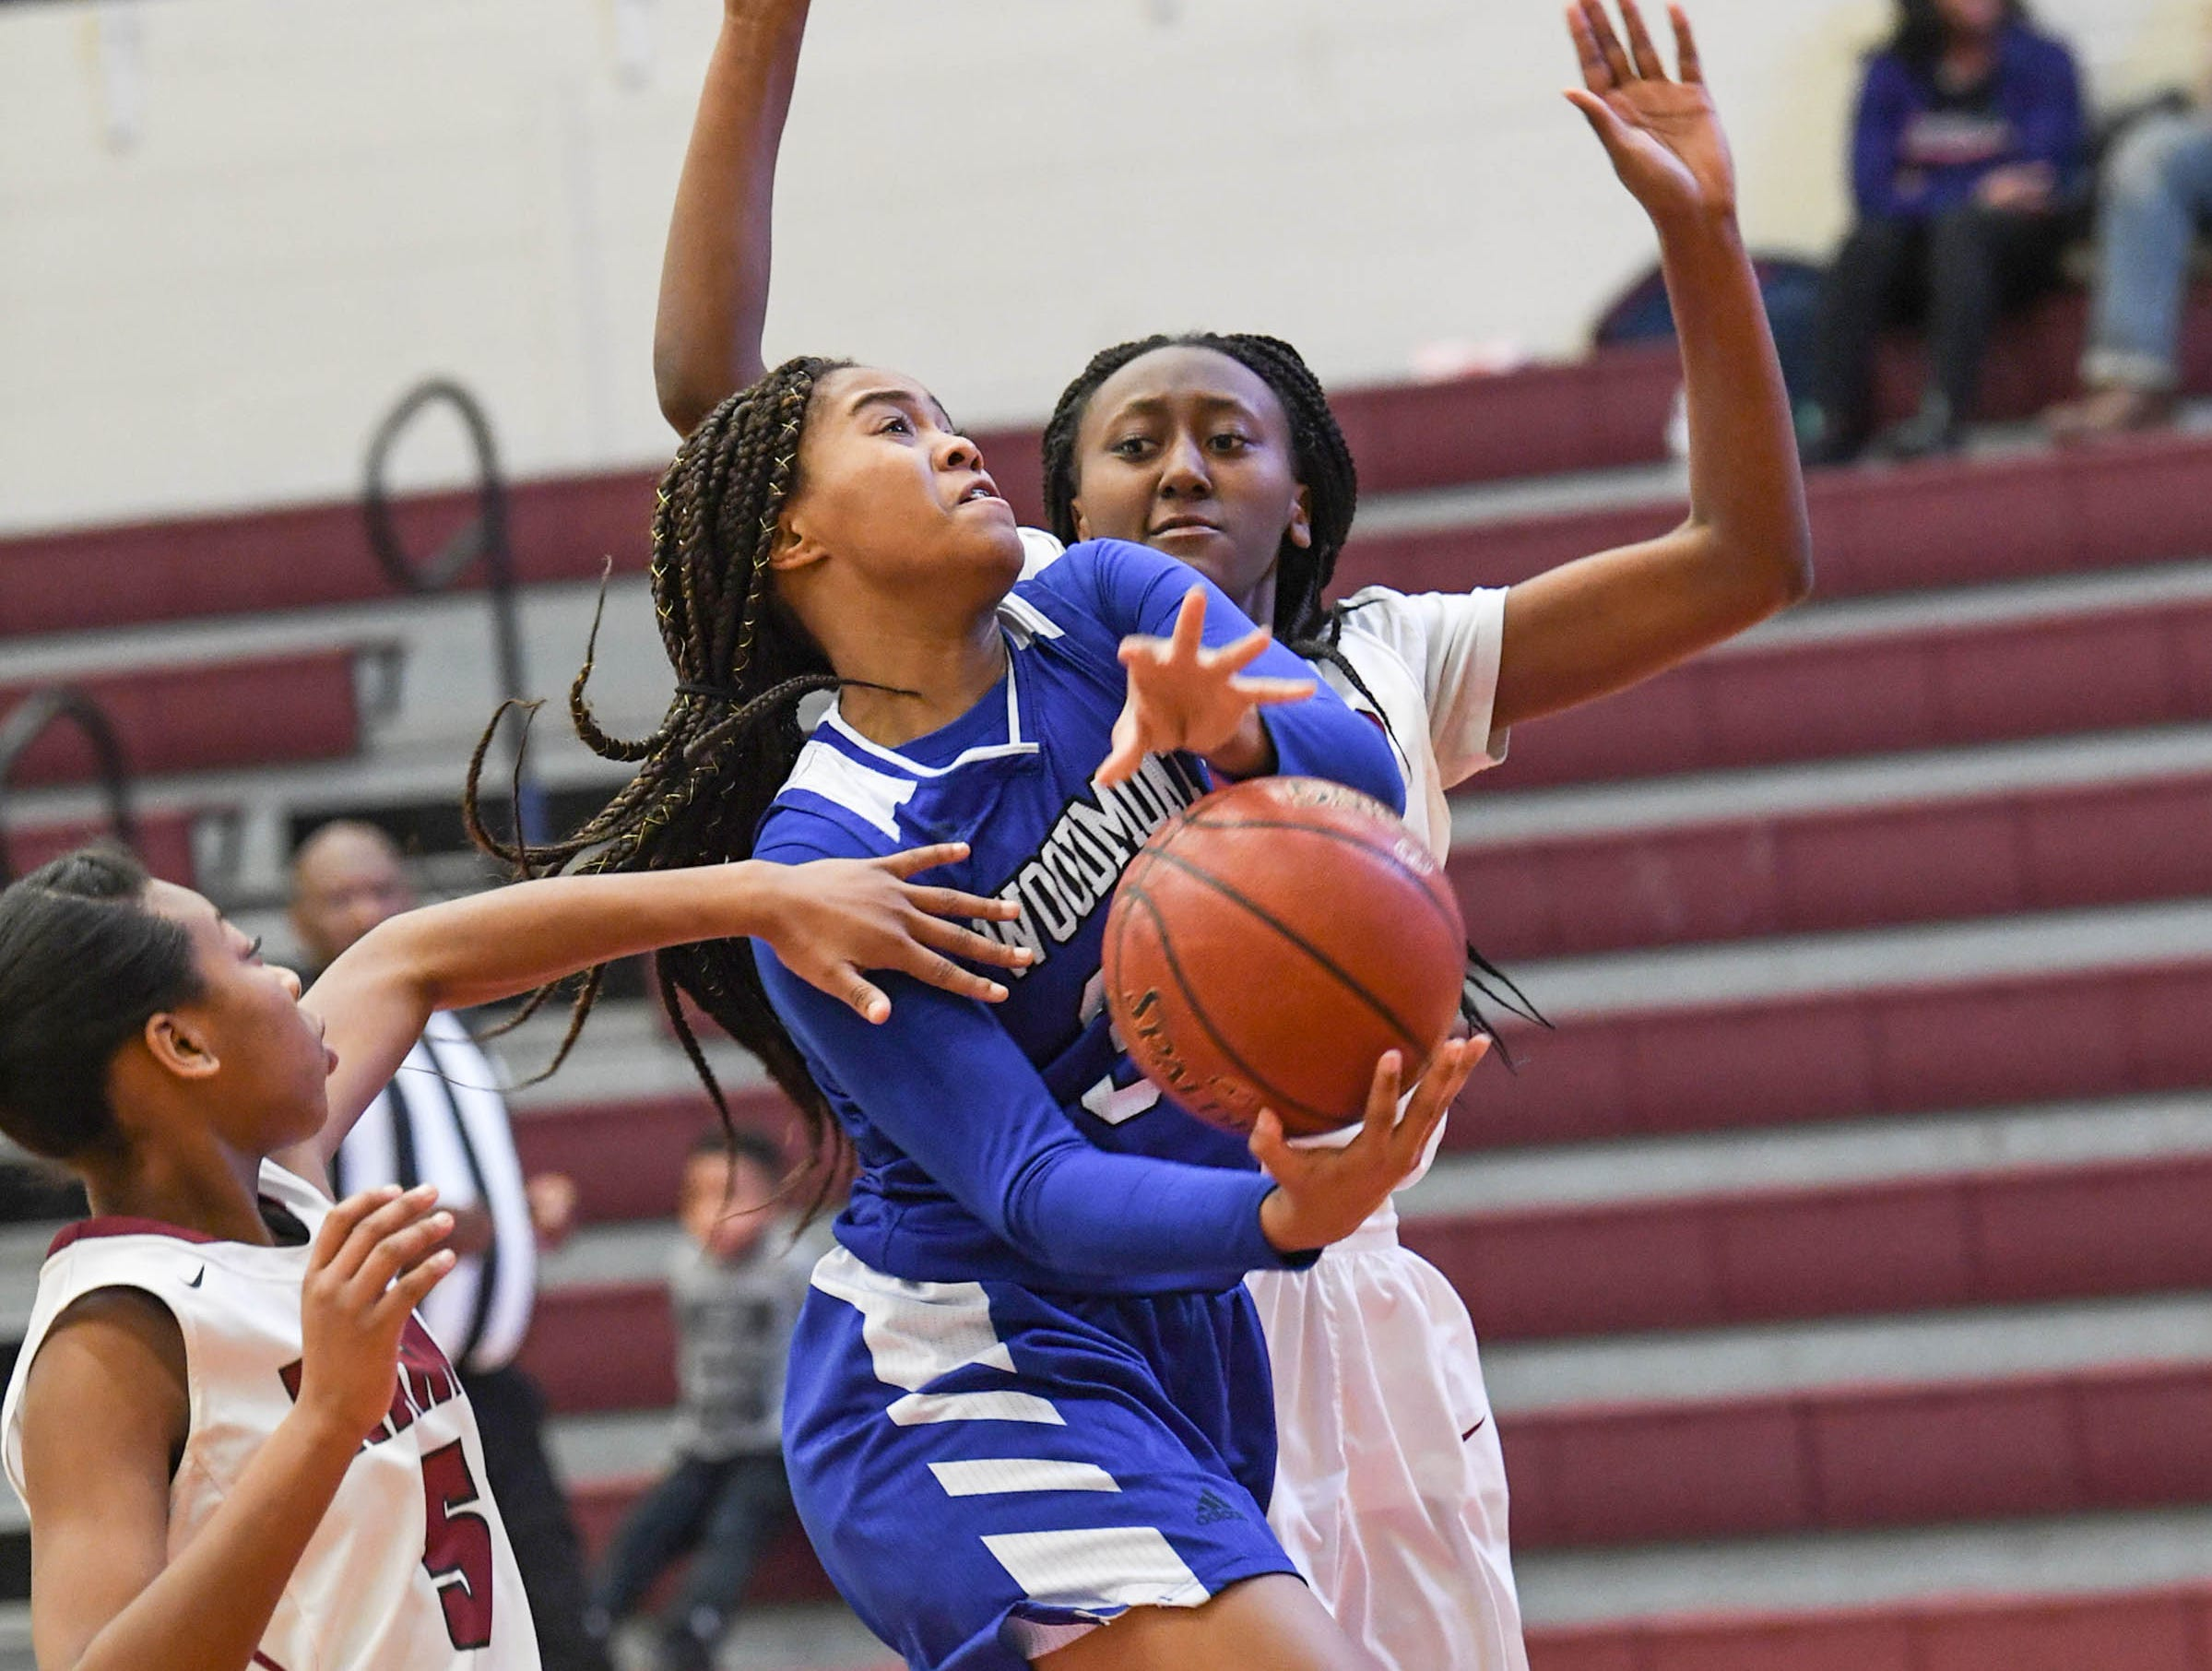 Woodmont senior Kitara Henry (33) shoots near Westside junior Keyshuna Fair (25), right, and Chelsea Adger (5), left, during the first quarter at Westside High School in Anderson on Tuesday.